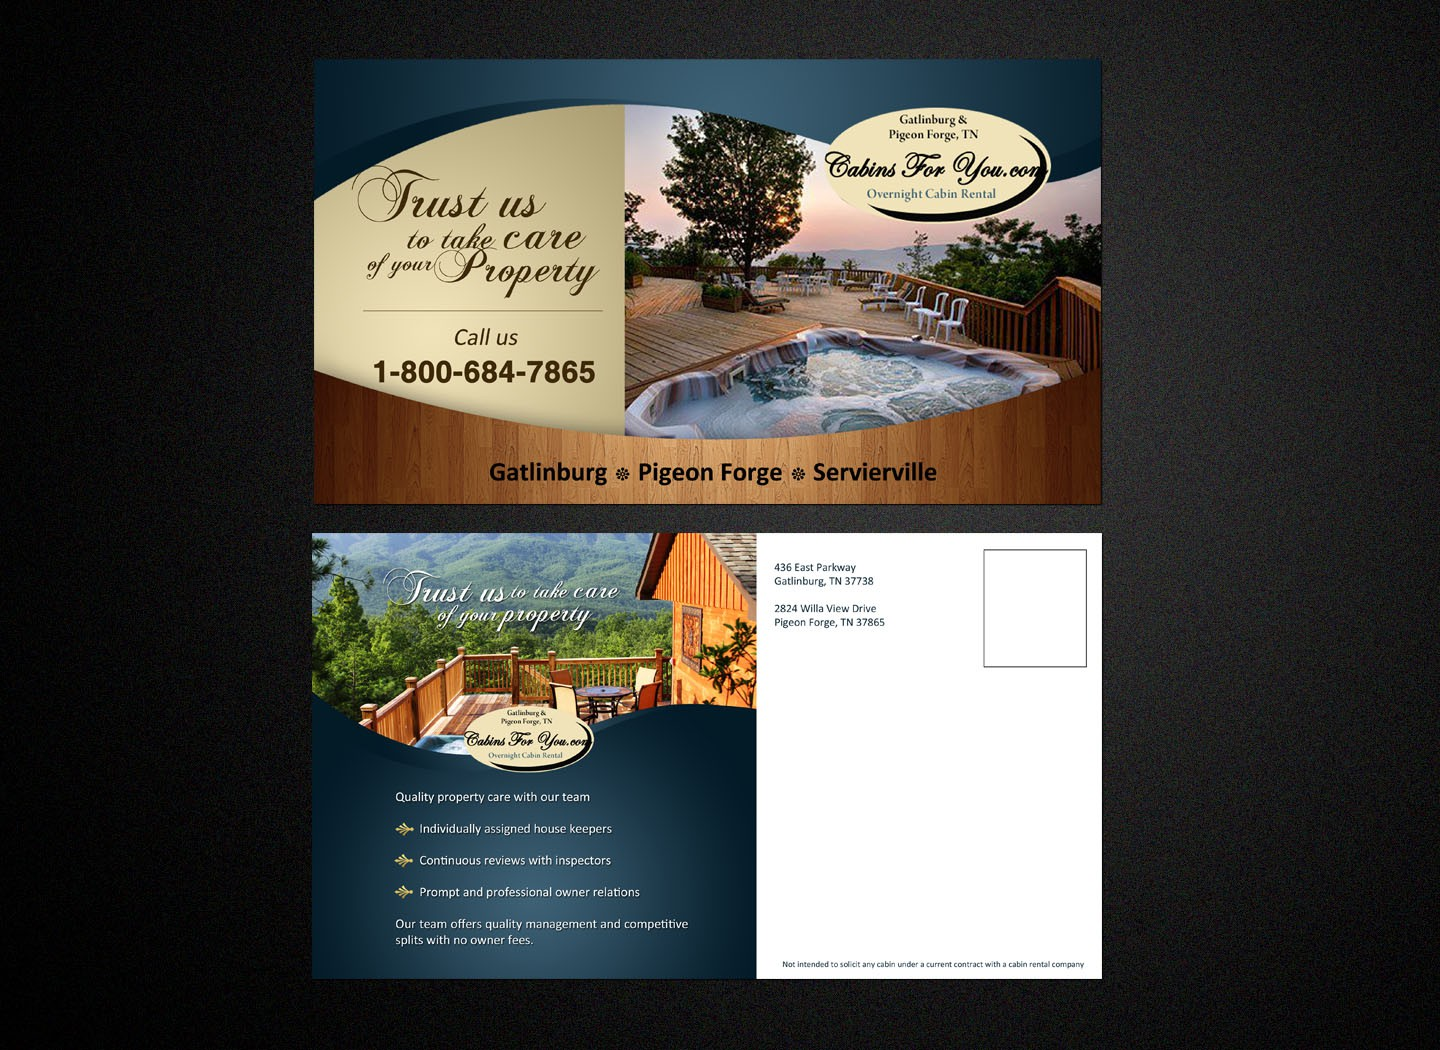 Help Cabins For You with new postcard design